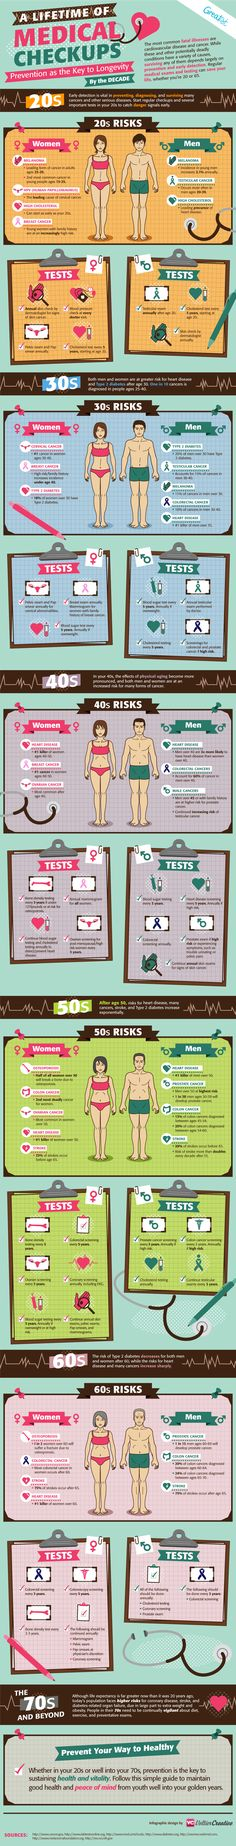 A Lifetime of Medical Checkups: awesome infographic